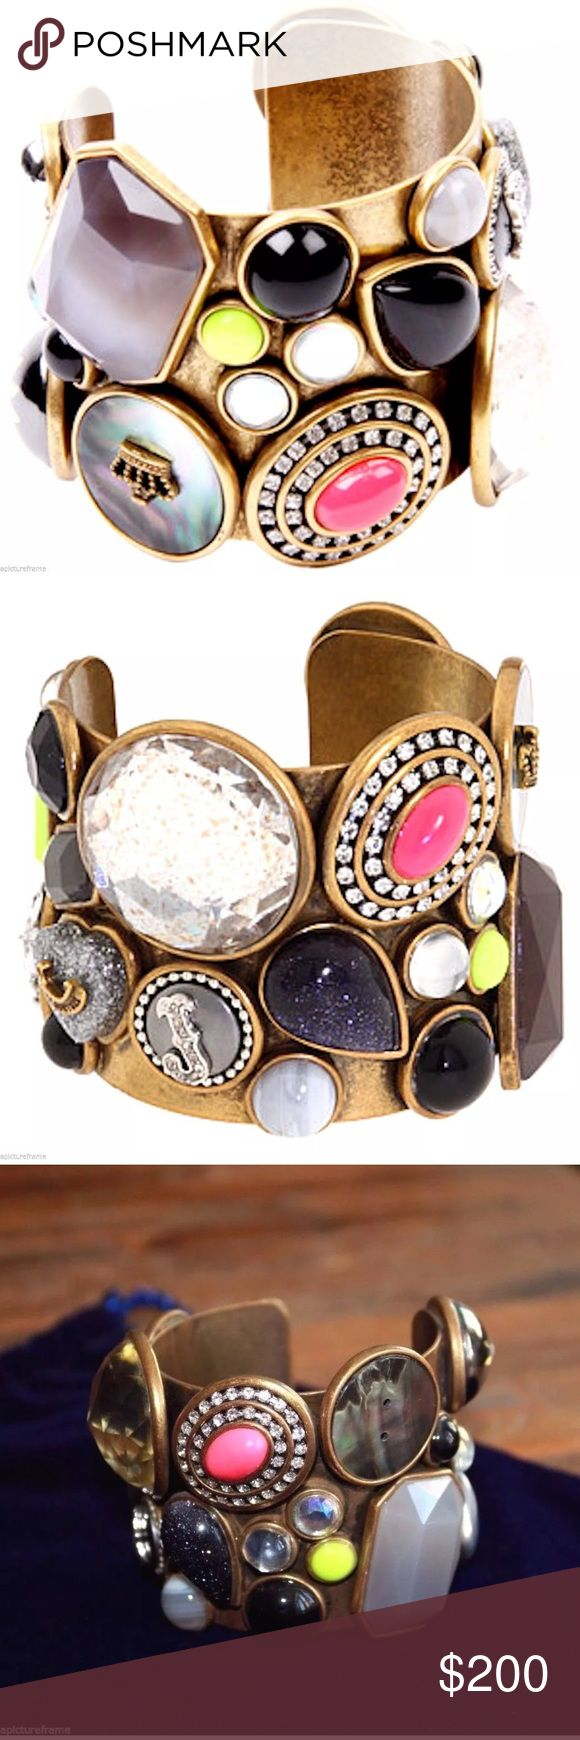 🆕 Juicy Couture Multi Stone/ Charm Cuff Bracelet! Up for sale is a brand new Juicy Couture Multi Stone Brass Cuff Bracelet.  Glamour has a new face with this stunning and bold multi-stone cuff from Juicy Couture. Brass-tone metal with rhinestones and resin cabochon stones in various sizes. All stones are intact.  Retail price: $275  Sold out everywhere! ✨💕 Juicy Couture Jewelry Bracelets